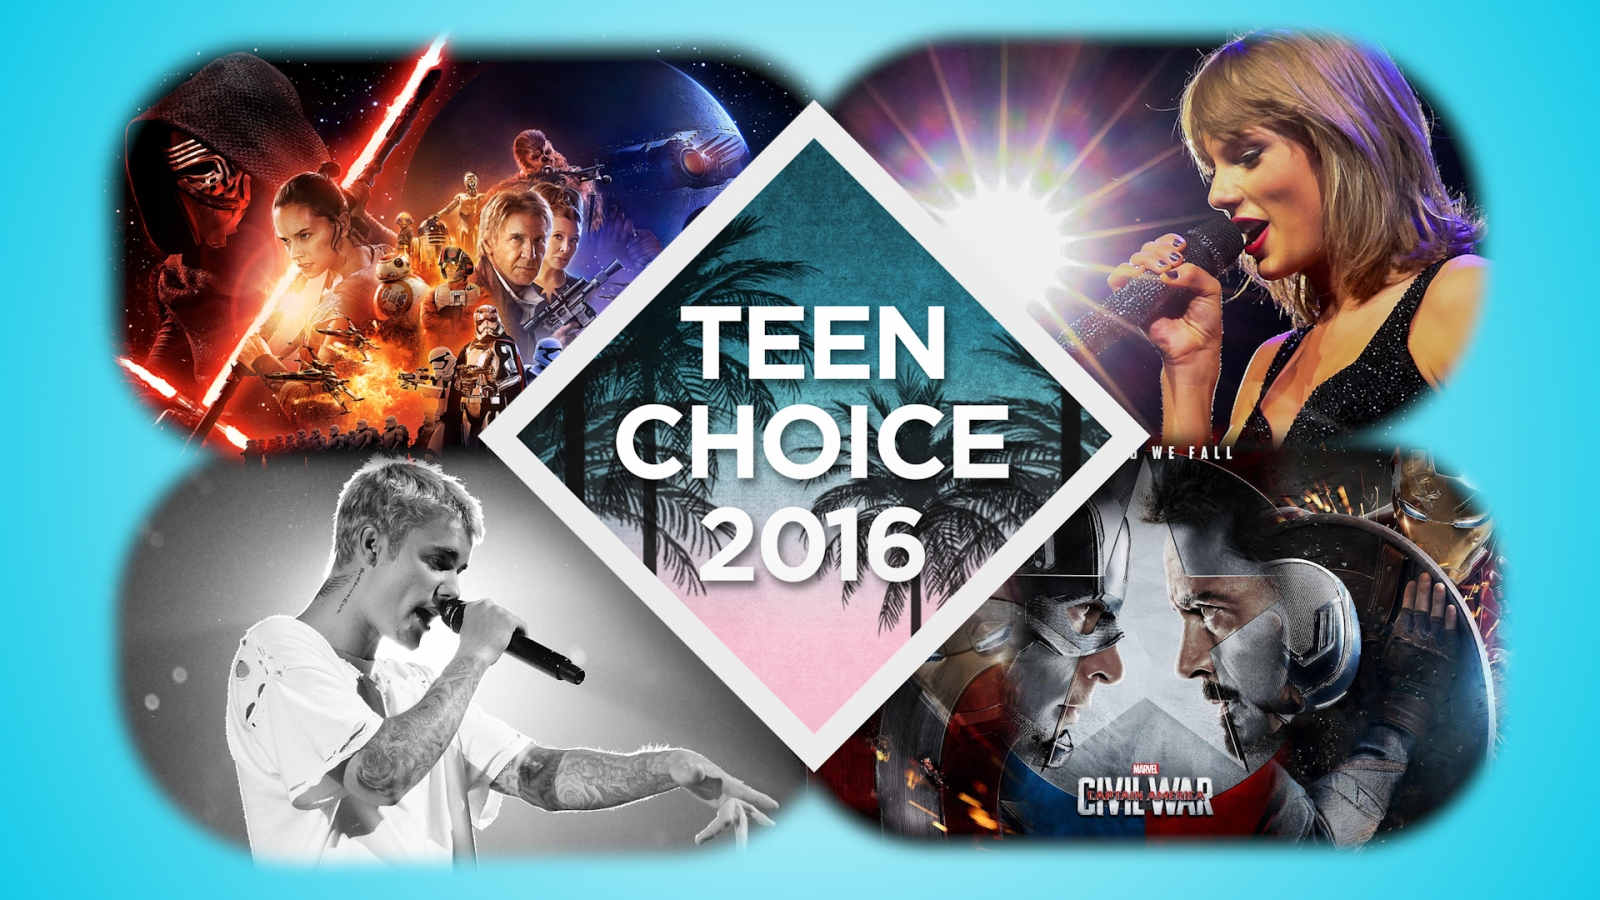 Teen Choice Awards 2016